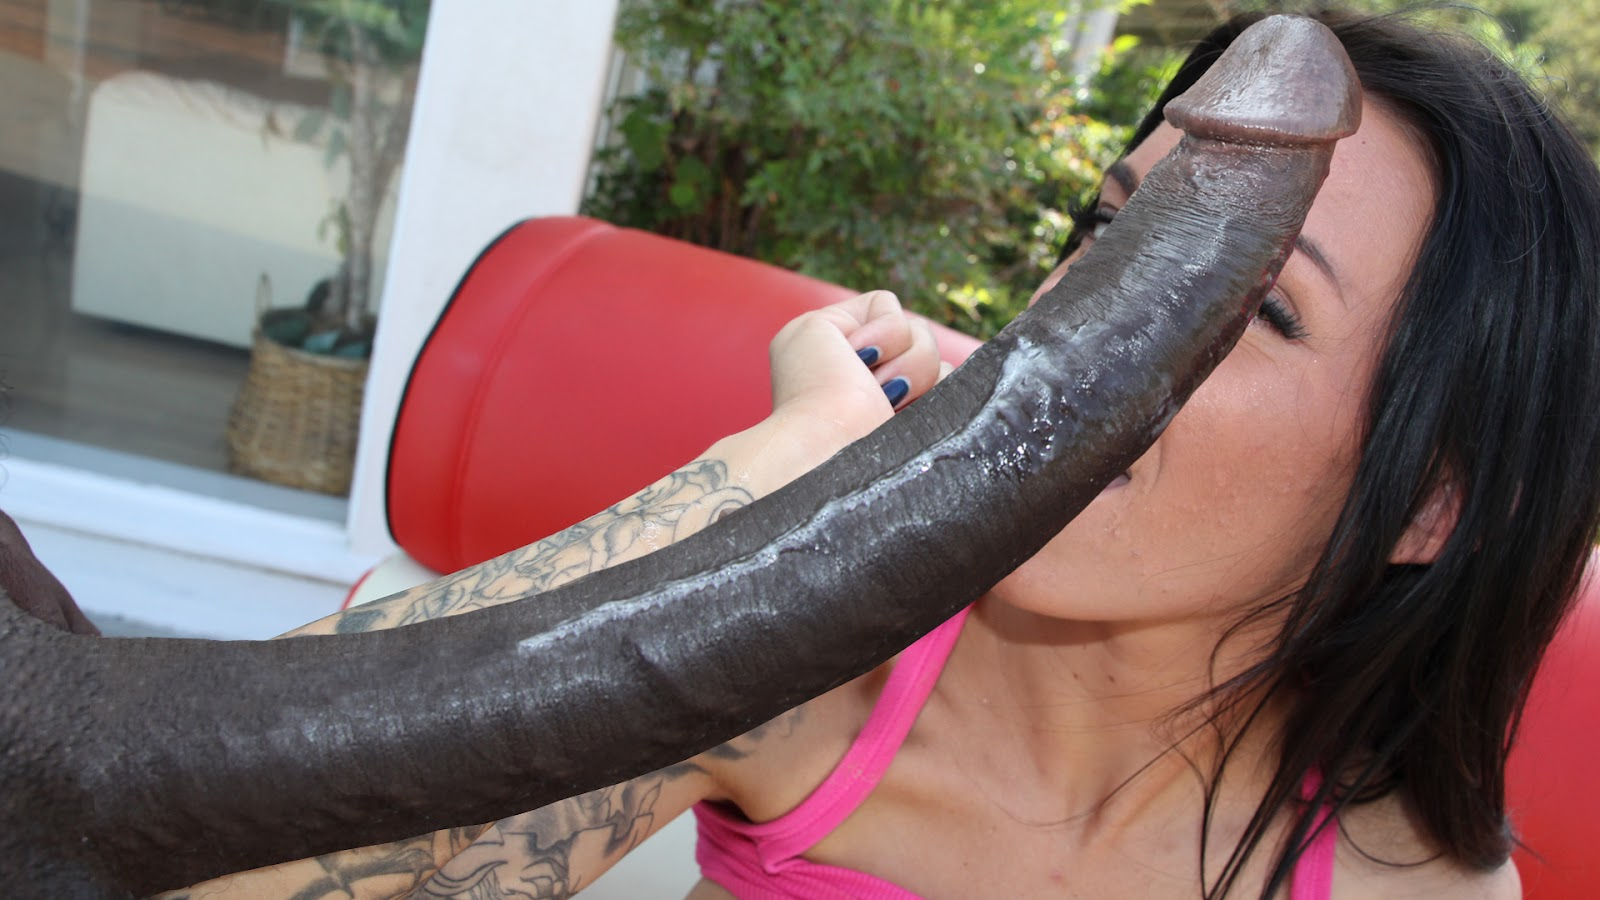 Monster penis pic xxx vids